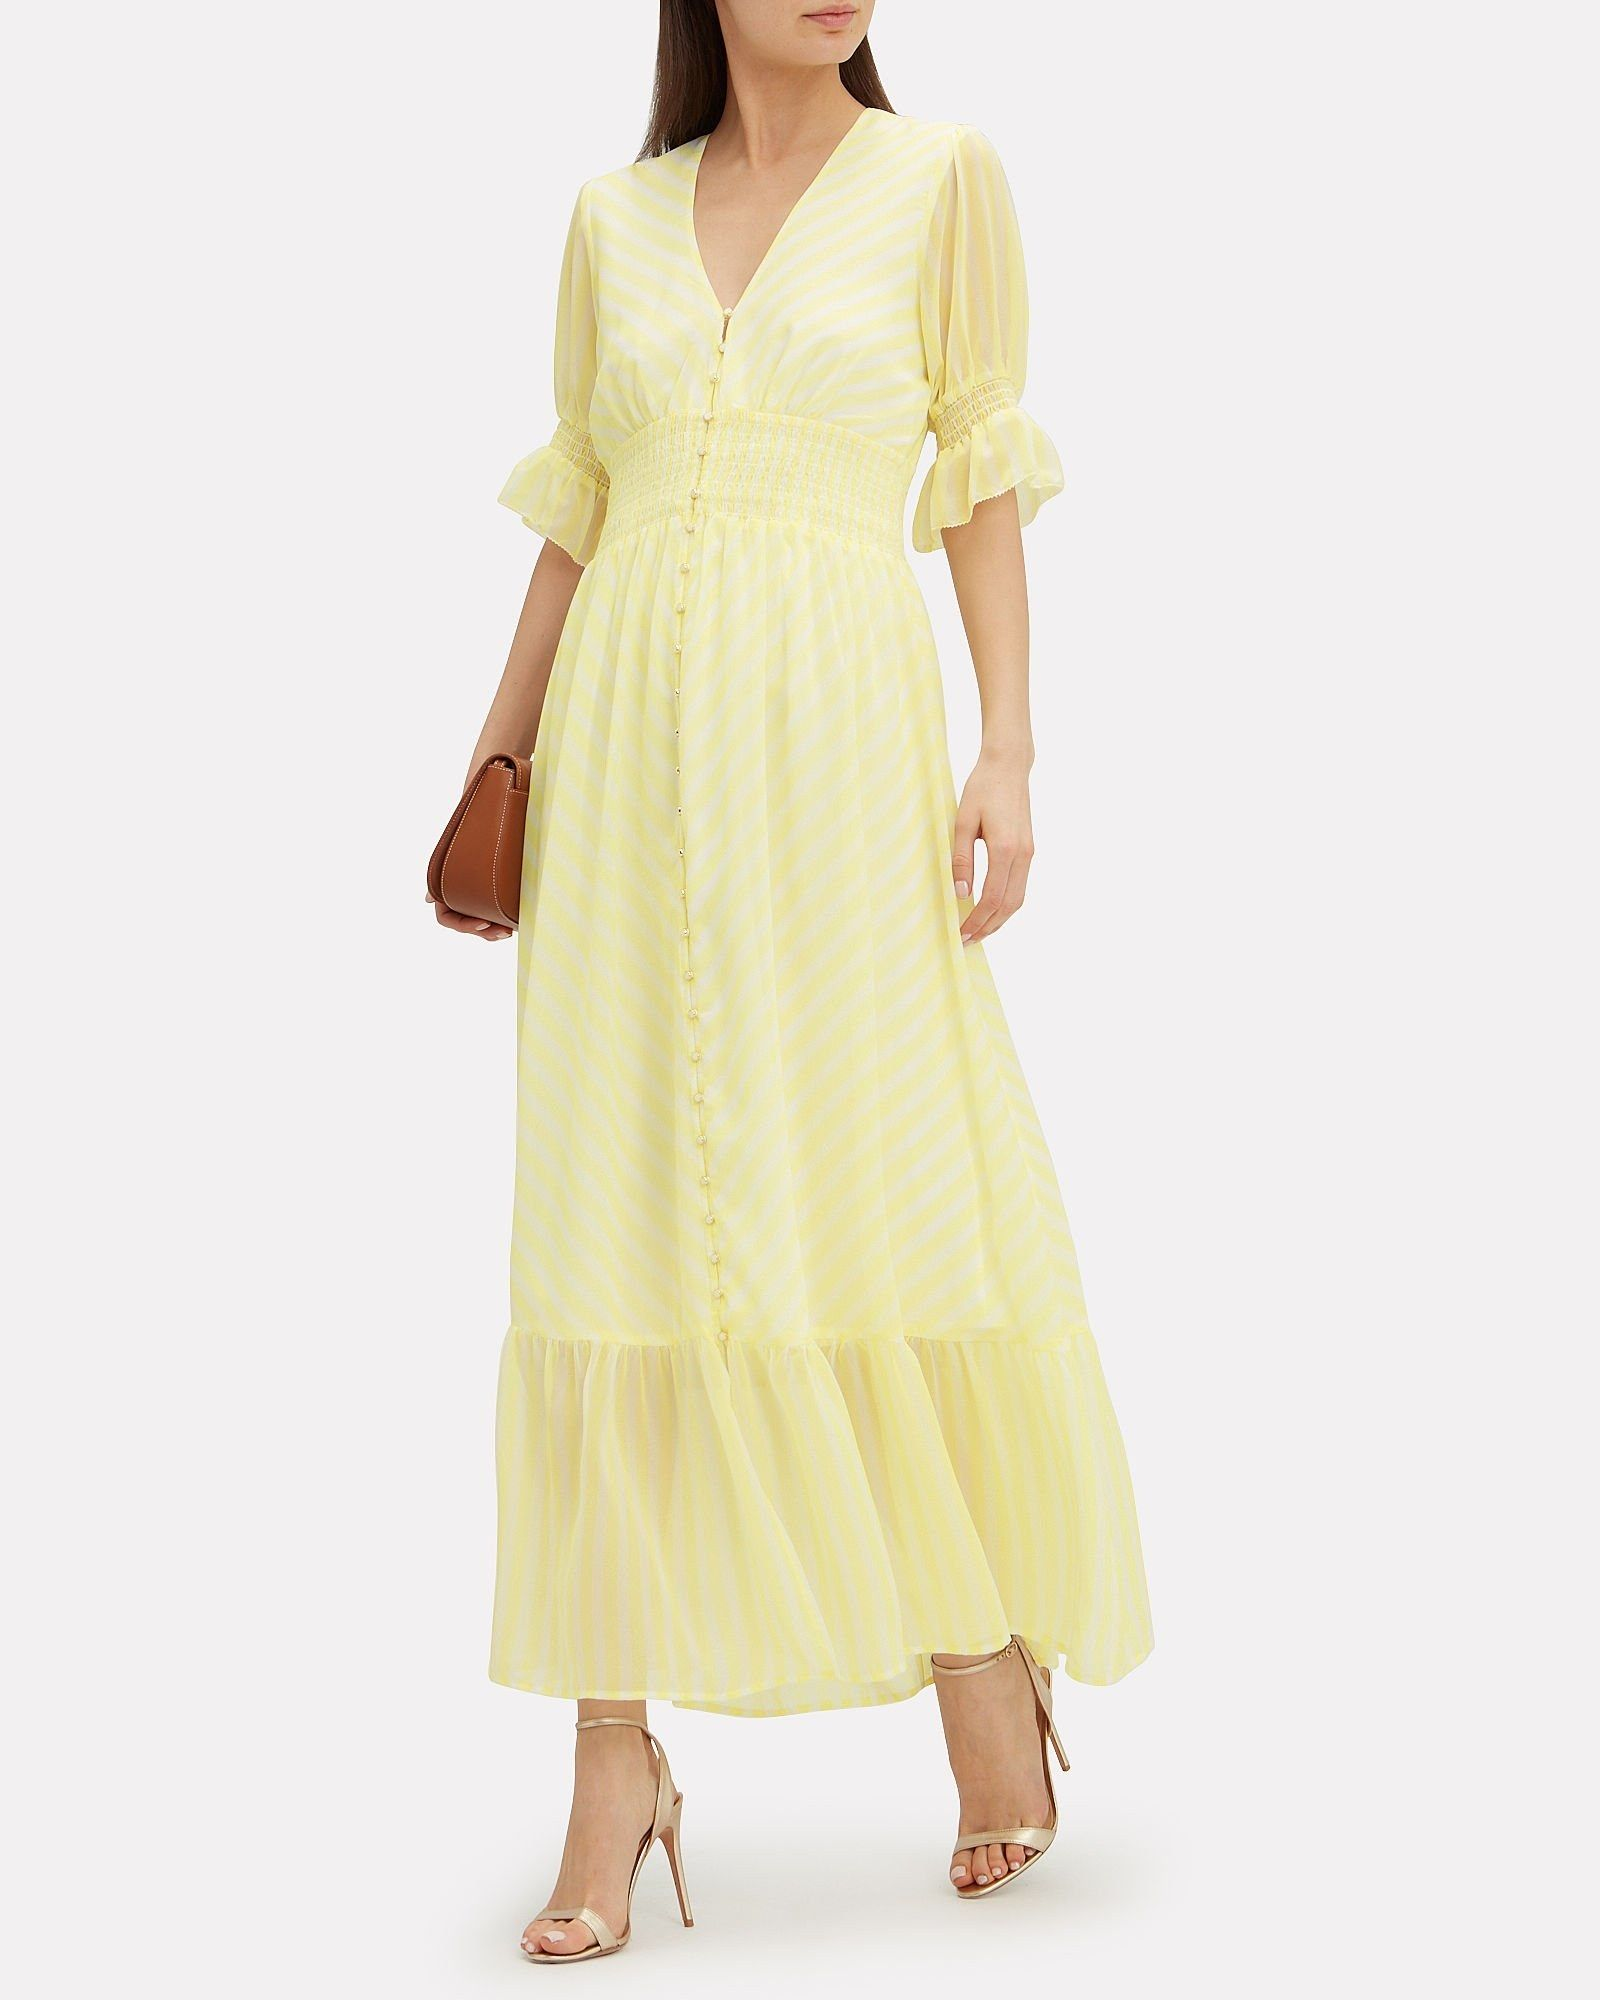 f9d226d2b4 29 Pastel Wedding Guest Dresses to Wear For Spring Weddings